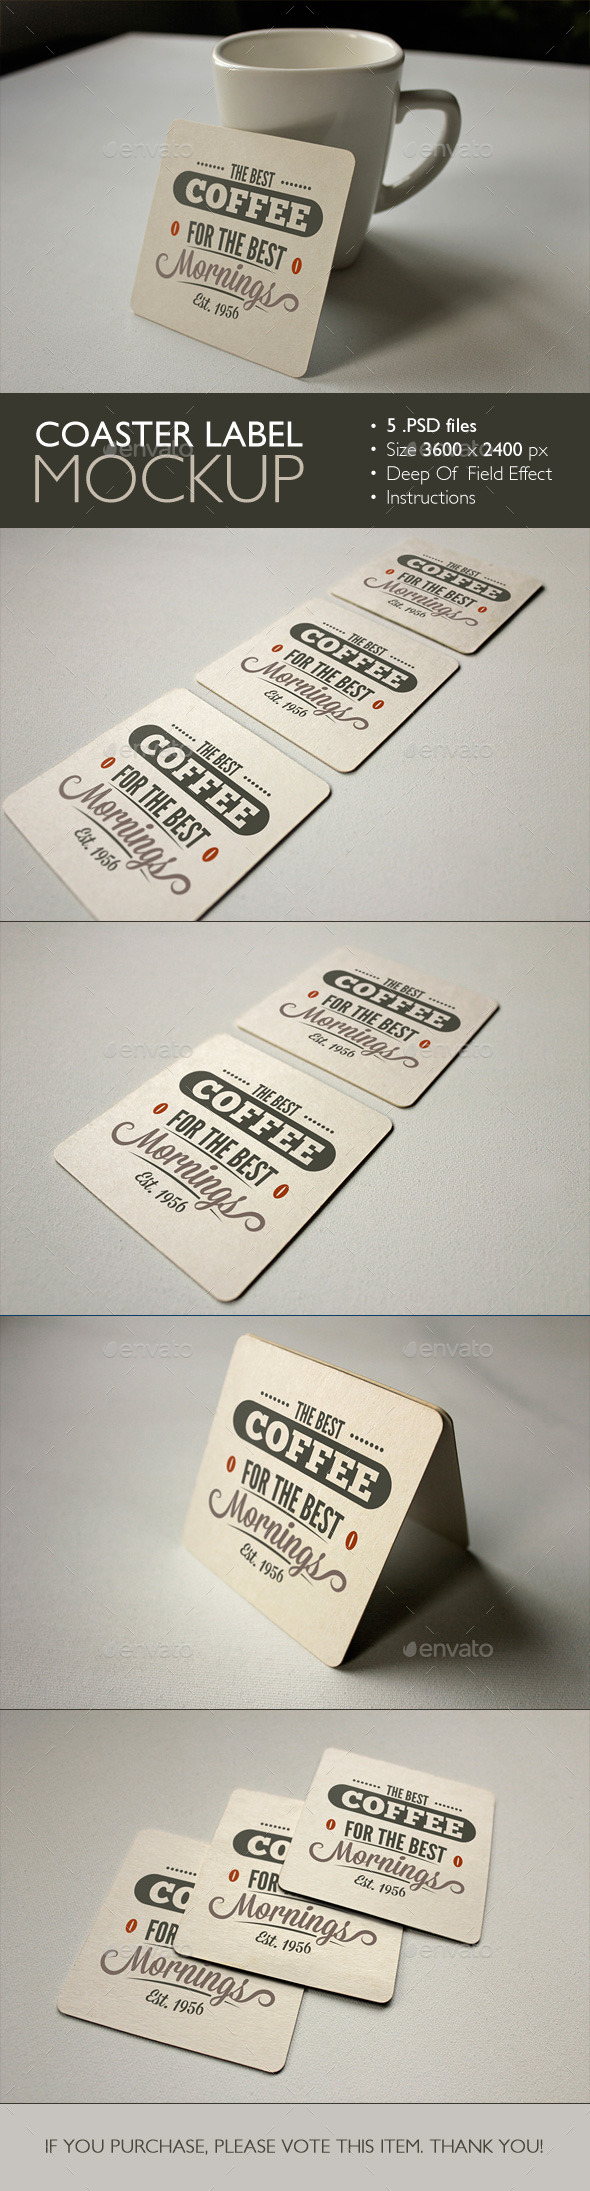 GraphicRiver Coaster Label Mockup 9829621